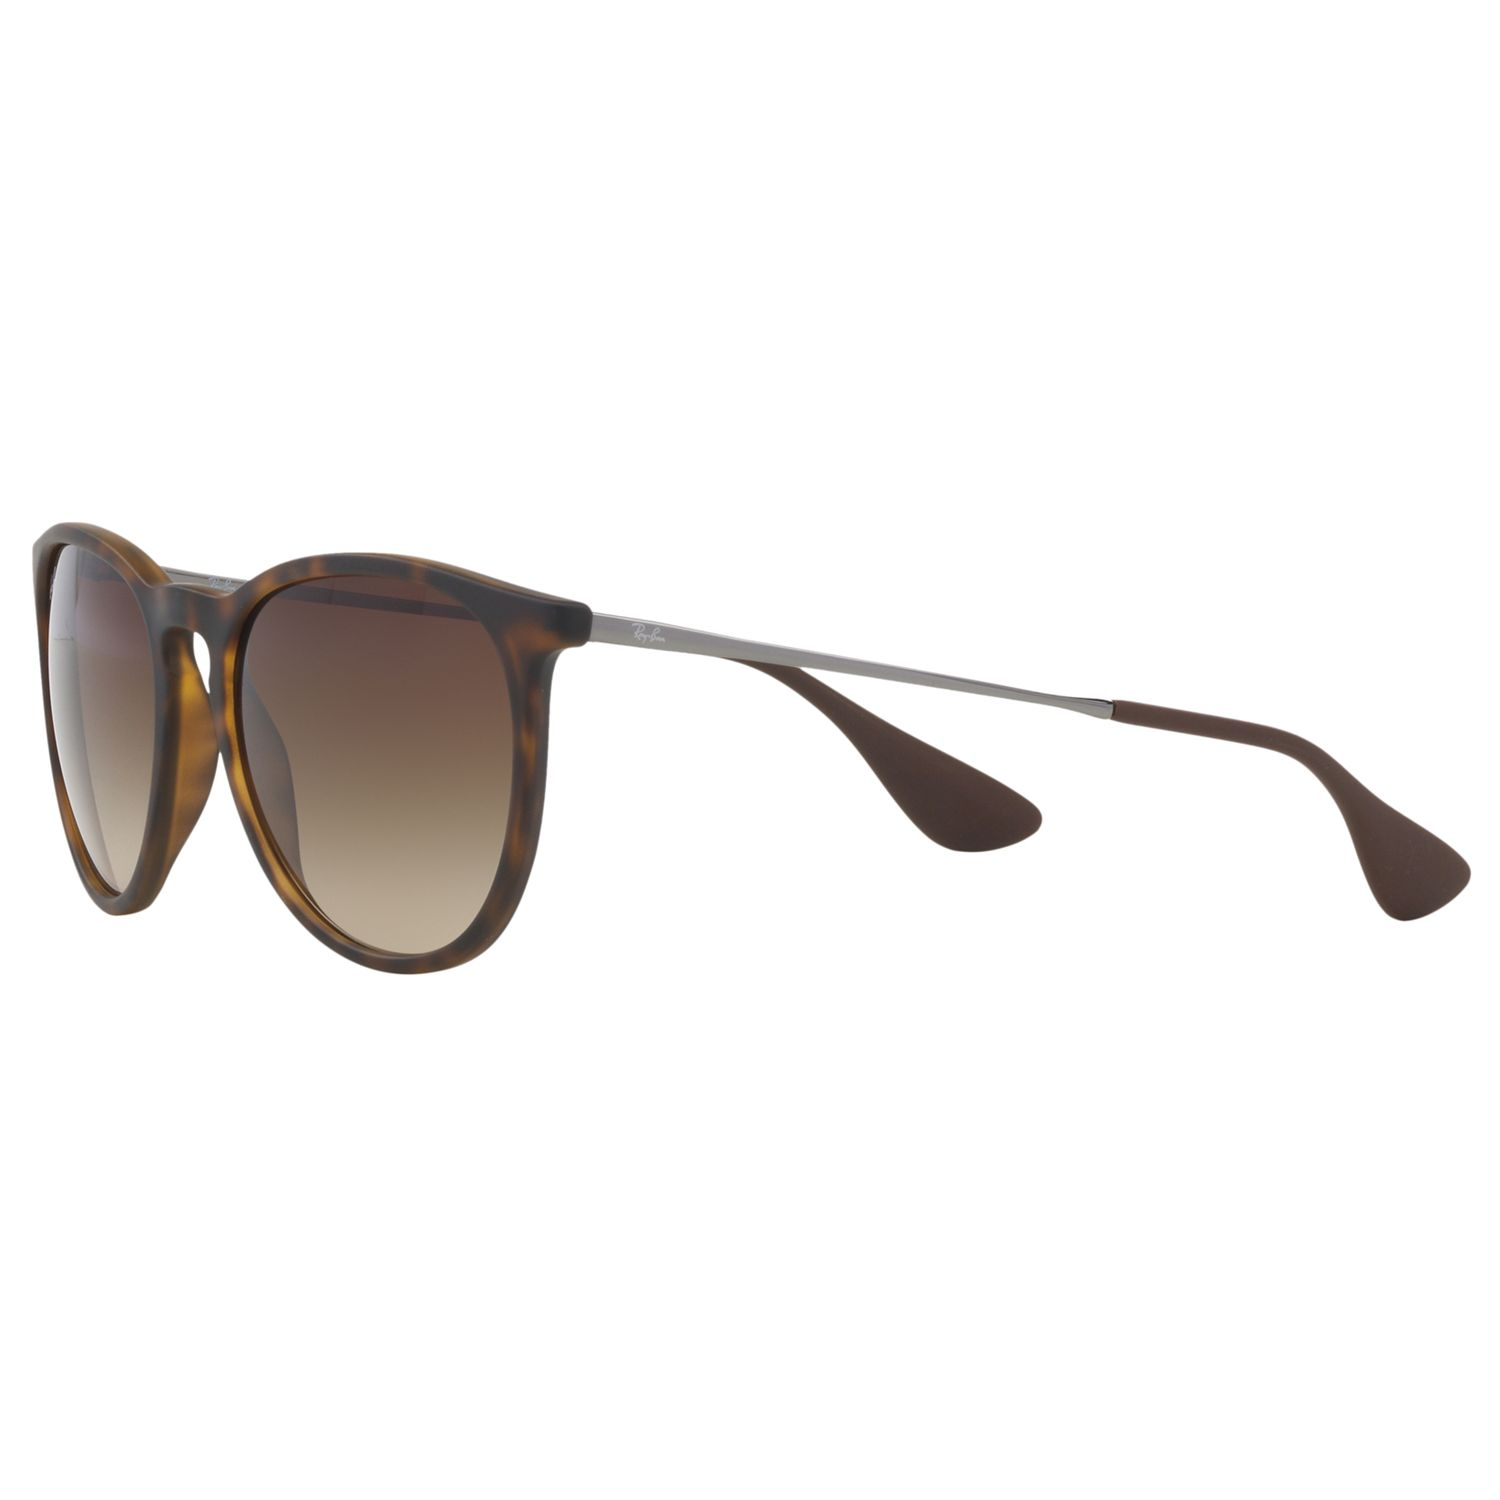 Ray-ban Ray-Ban RB4171 Women's Erica Sunglasses, Havana/Brown Gradient